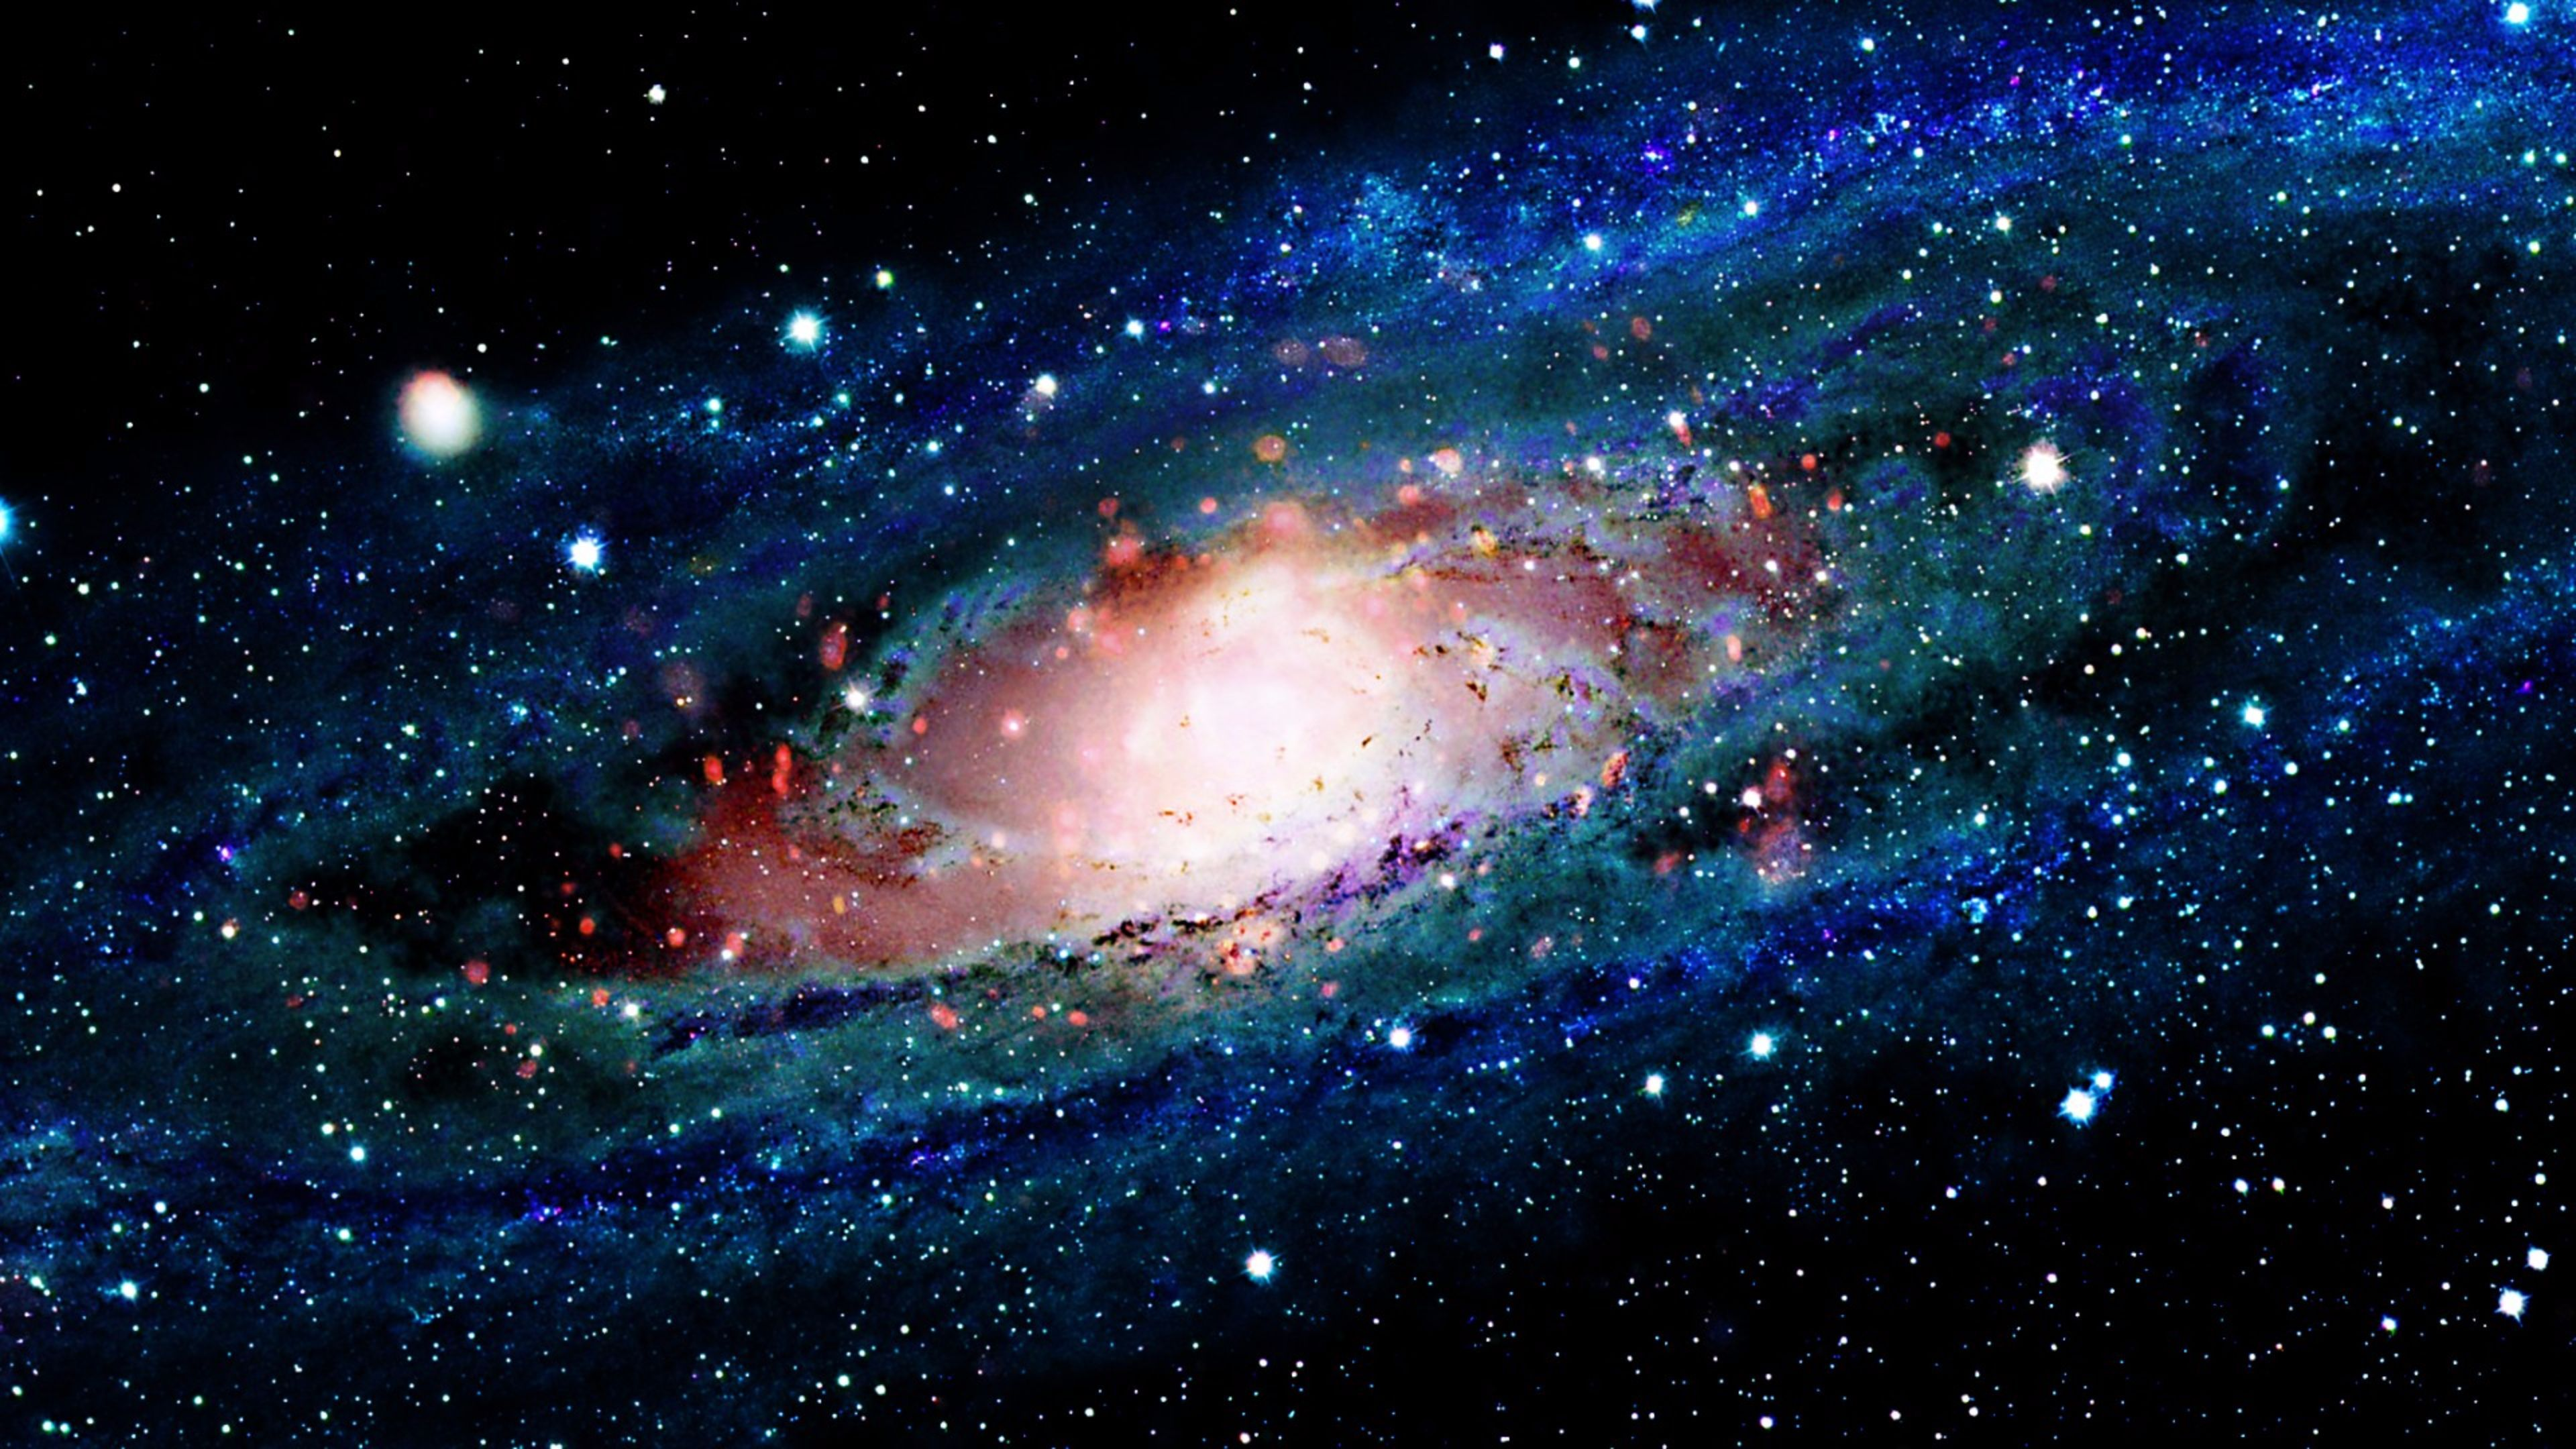 4k Space Wallpapers Top Free 4k Space Backgrounds Wallpaperaccess